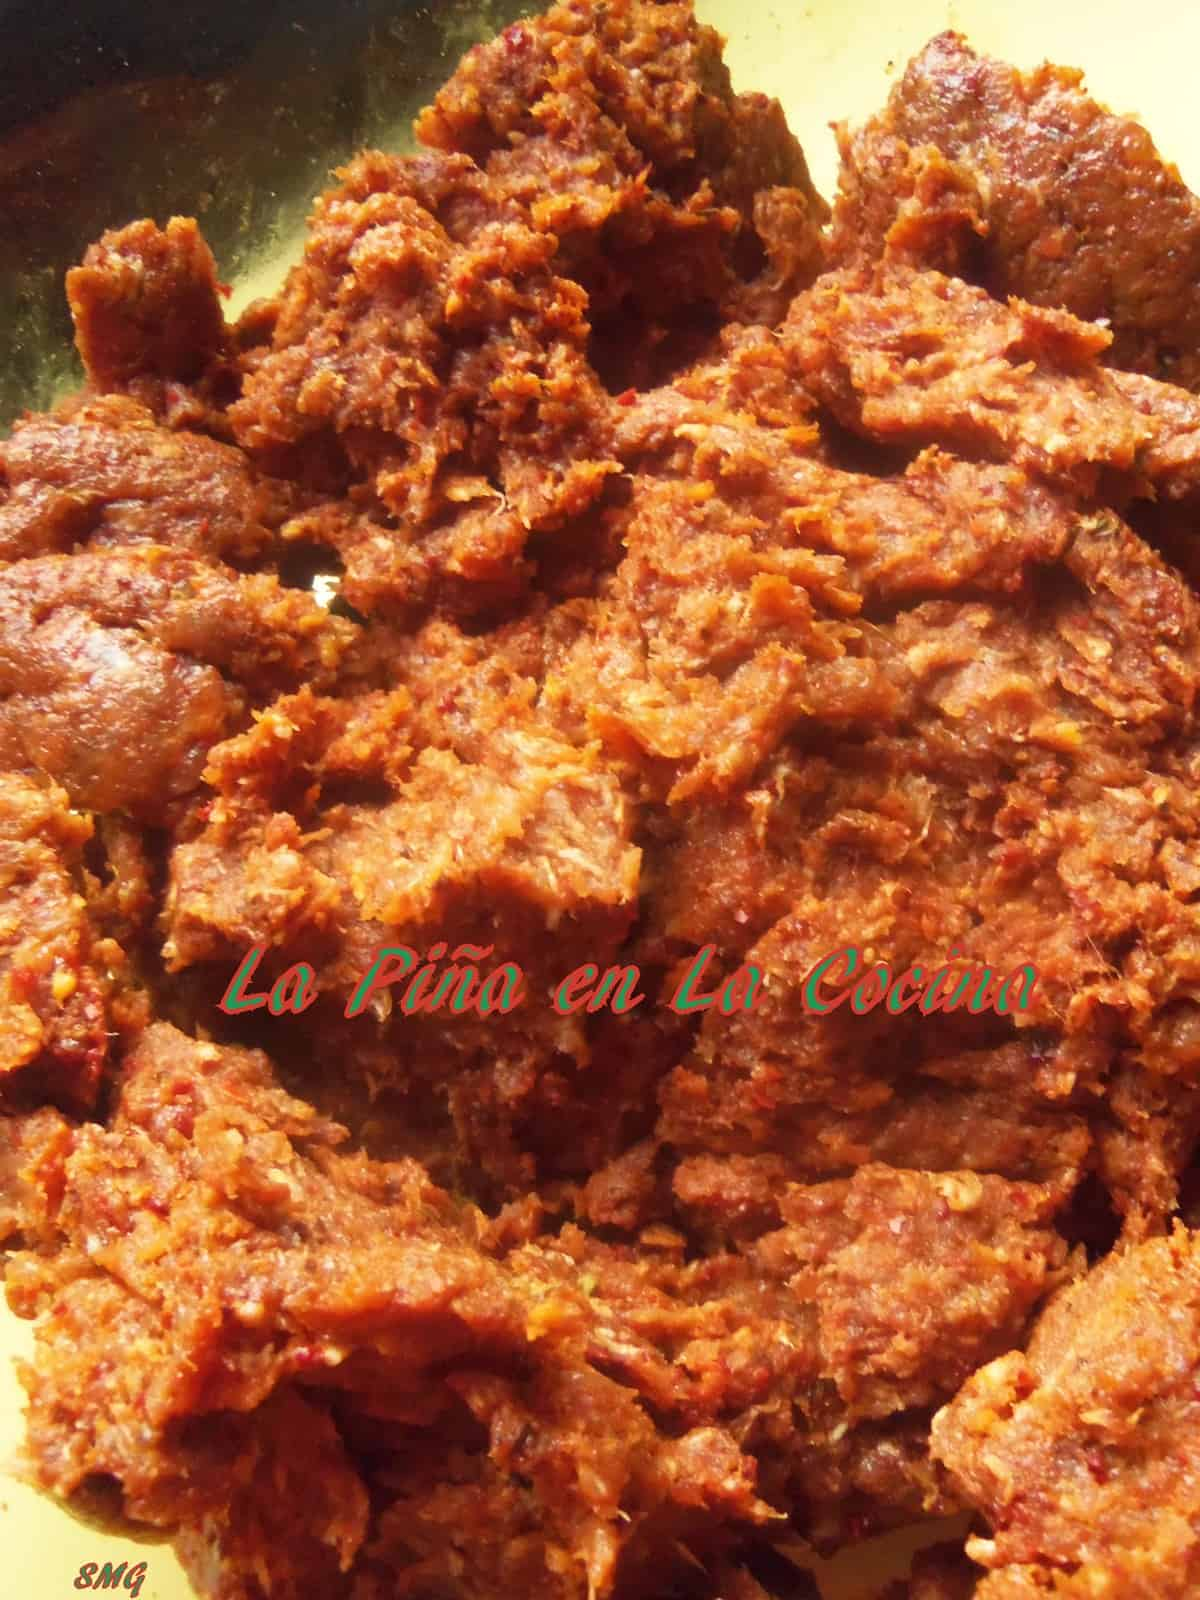 Homemade Chorizo Using Dried Spices and Chiles